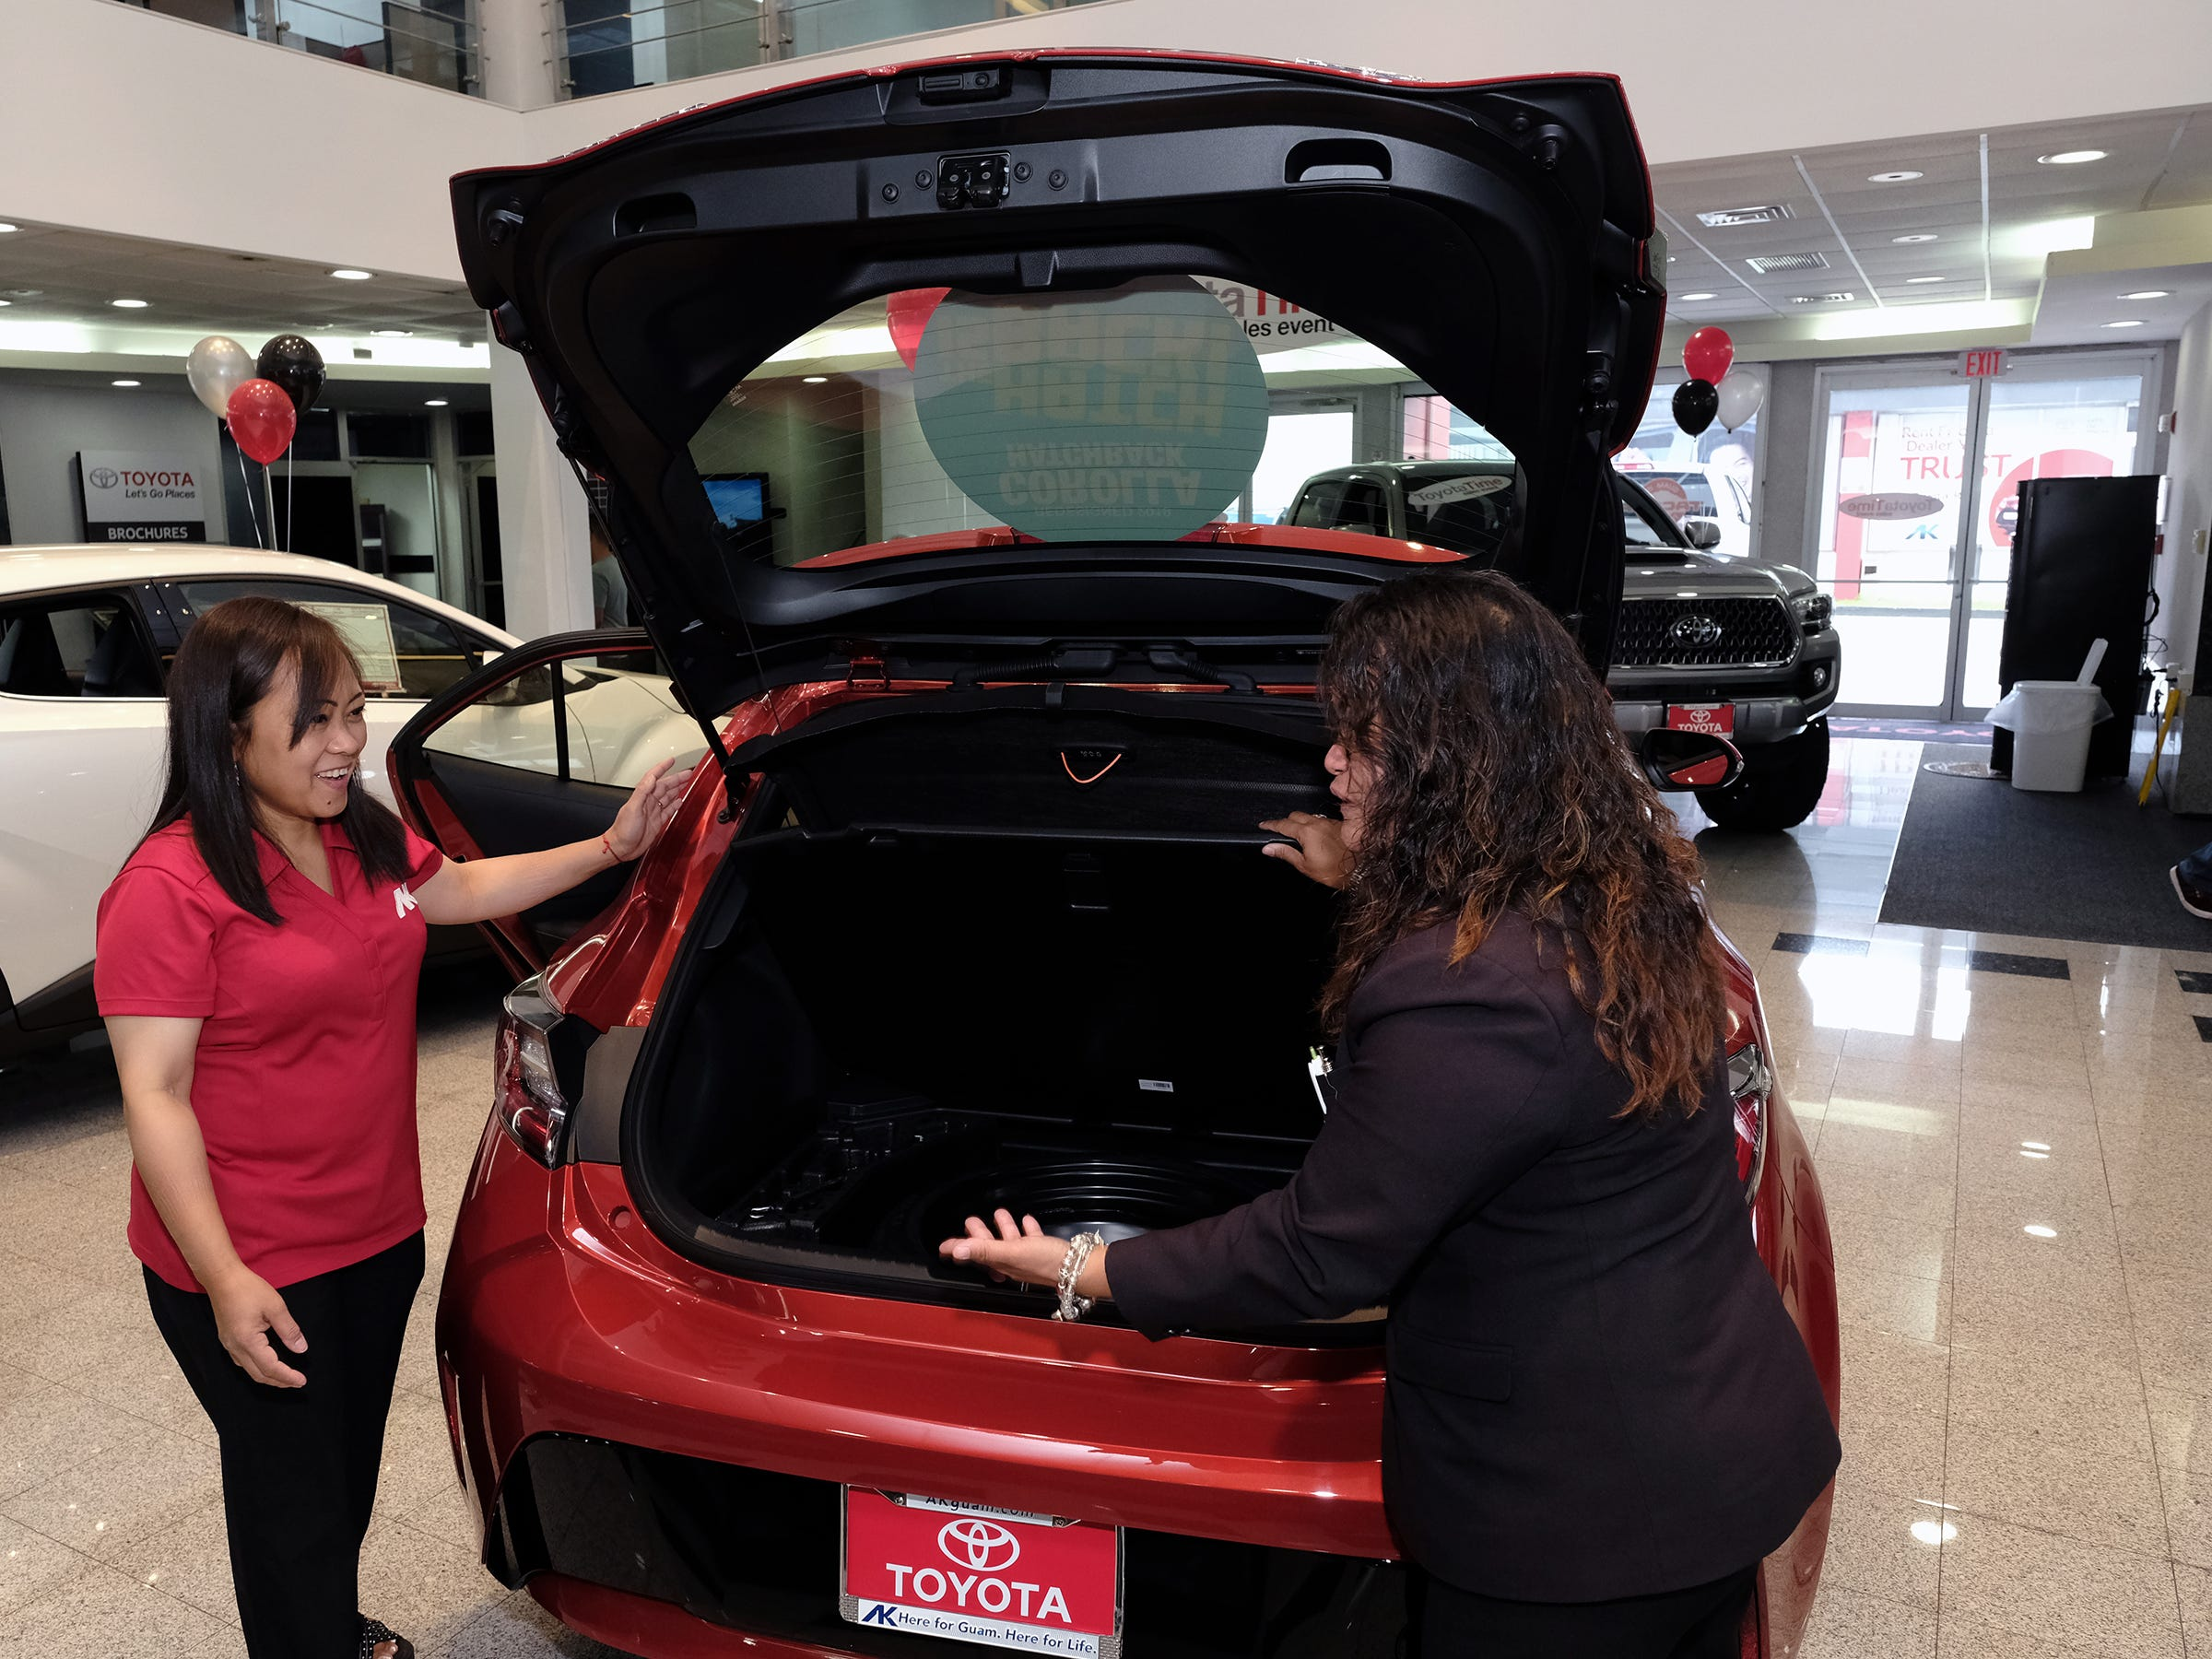 Cathy Ignacio, left, and Mona Cing, sales associates for Atkins Kroll Toyota, open the hatchback of the 2019 Toyota Corolla in the showroom Sept. 8, 2018.